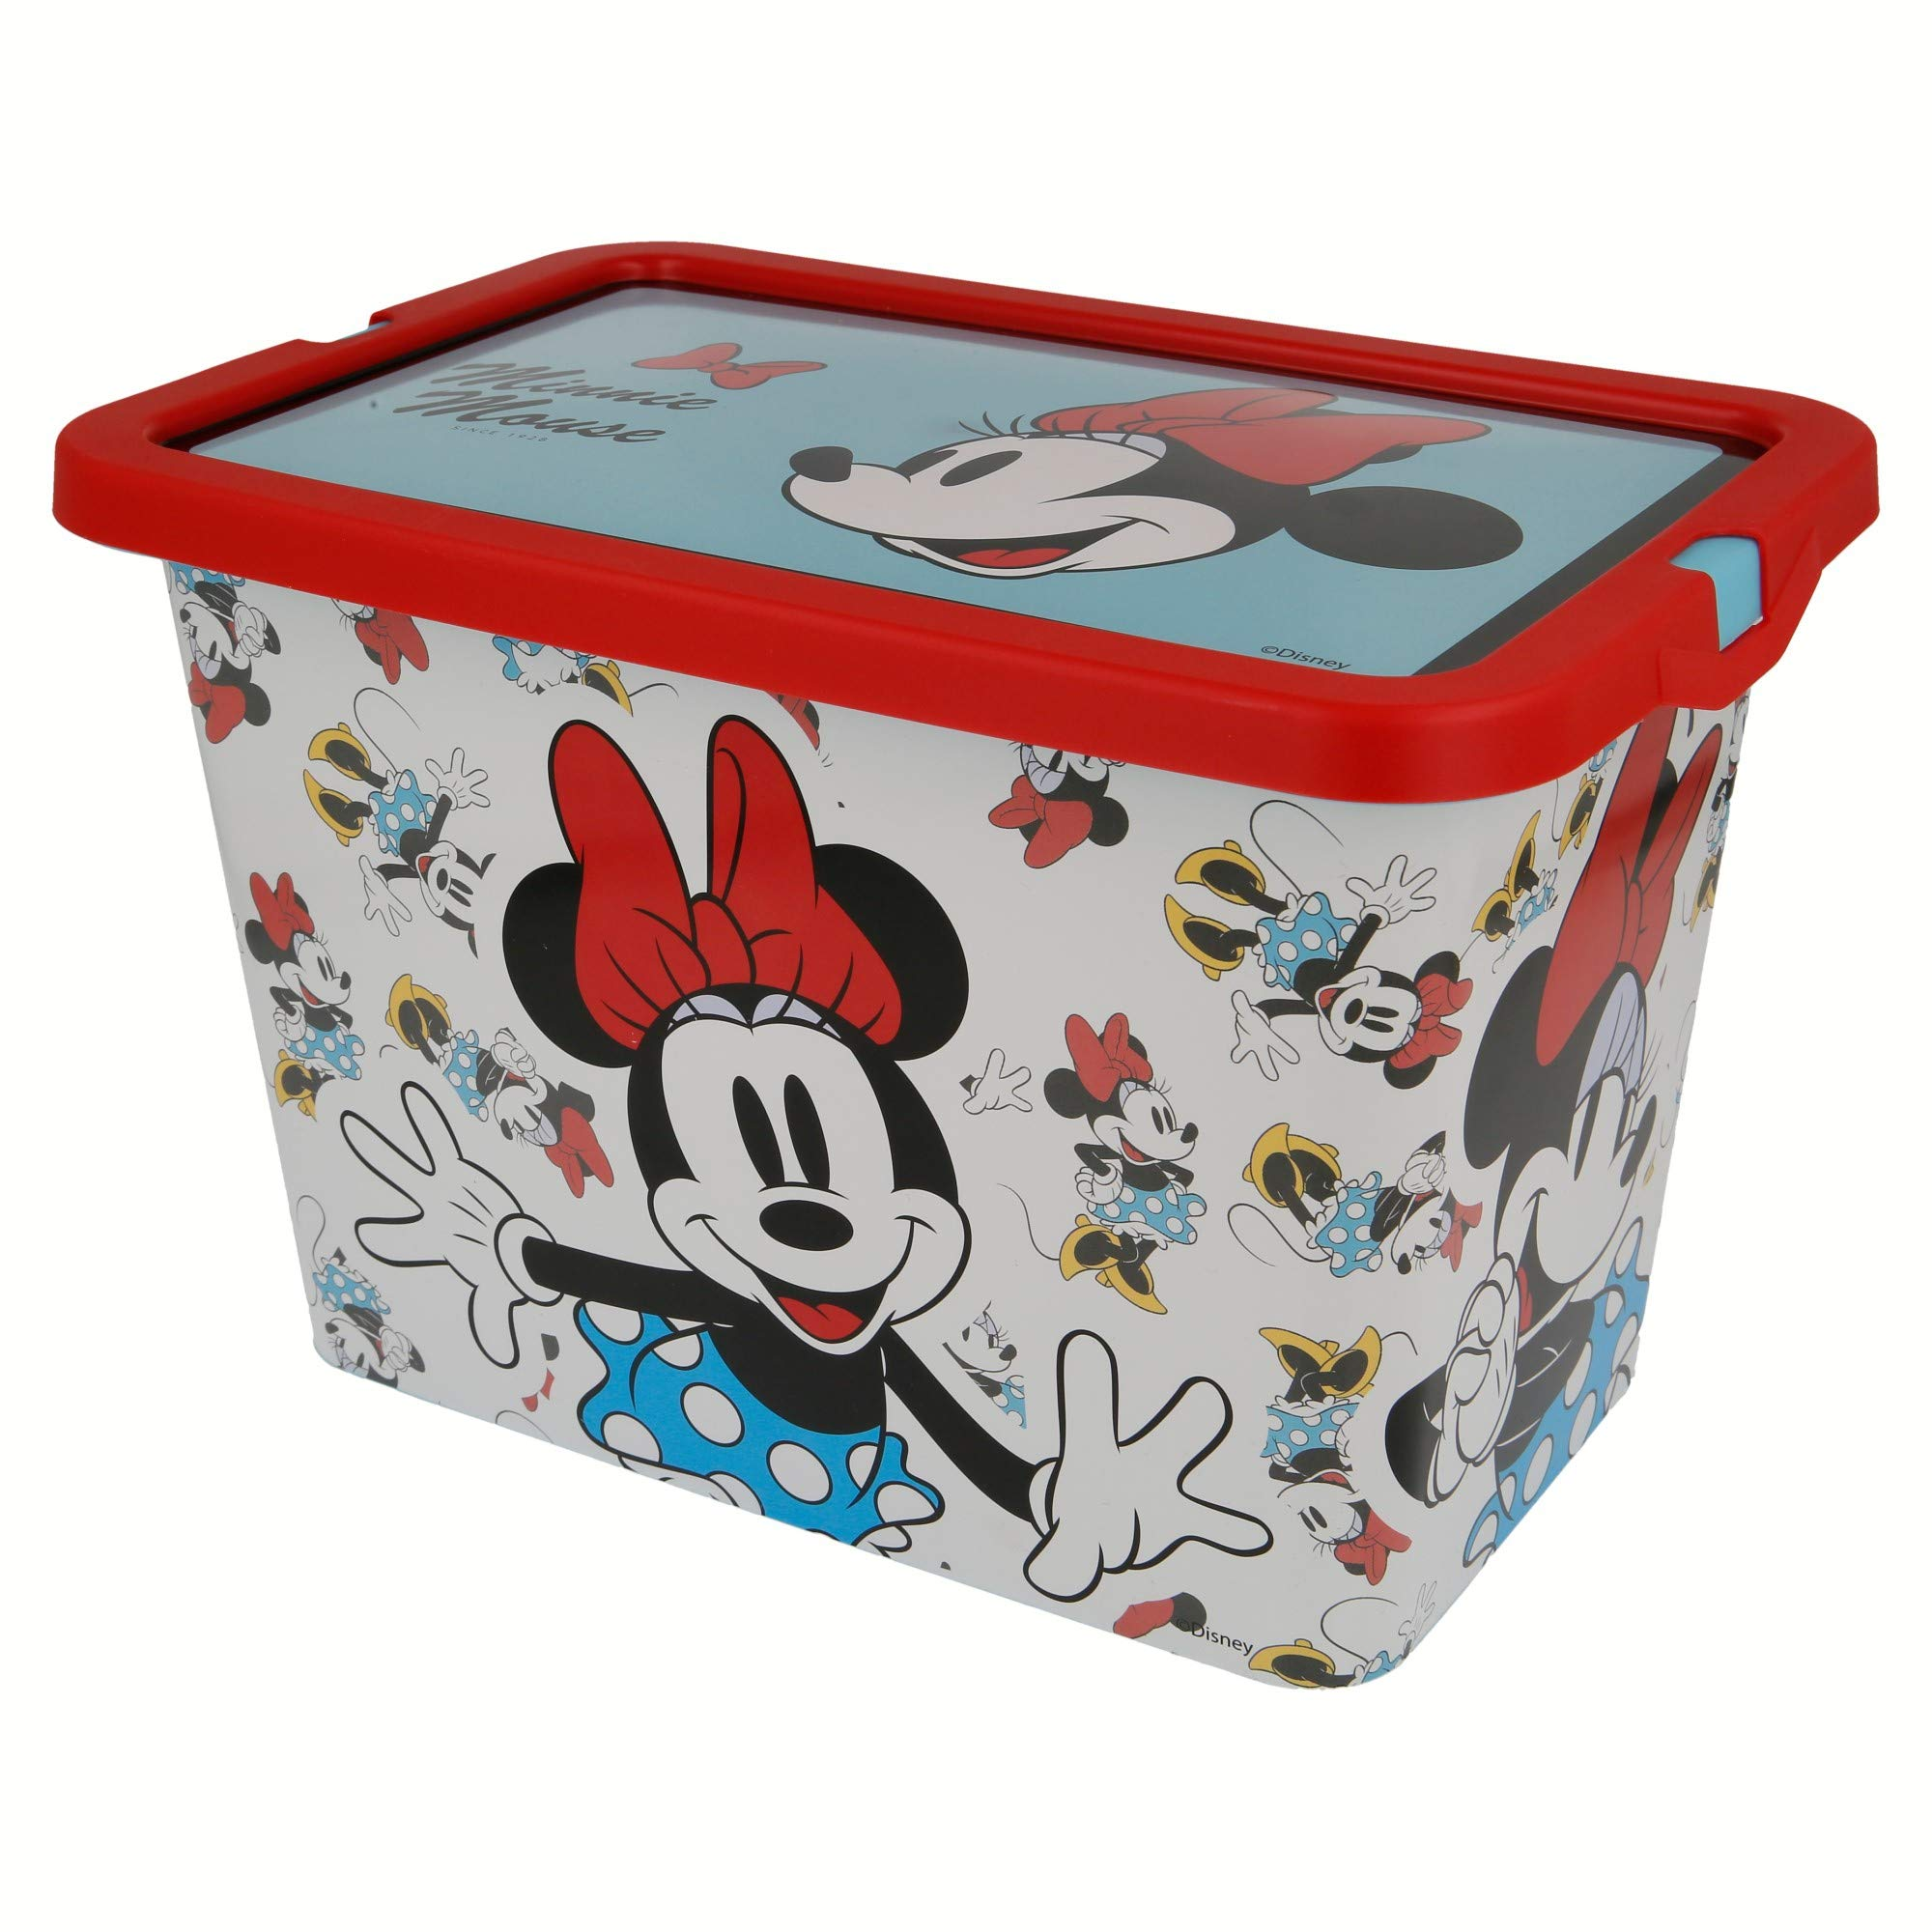 Stor Caja Click 7 L | Minnie Mouse - Disney - Vintage: Amazon.es ...